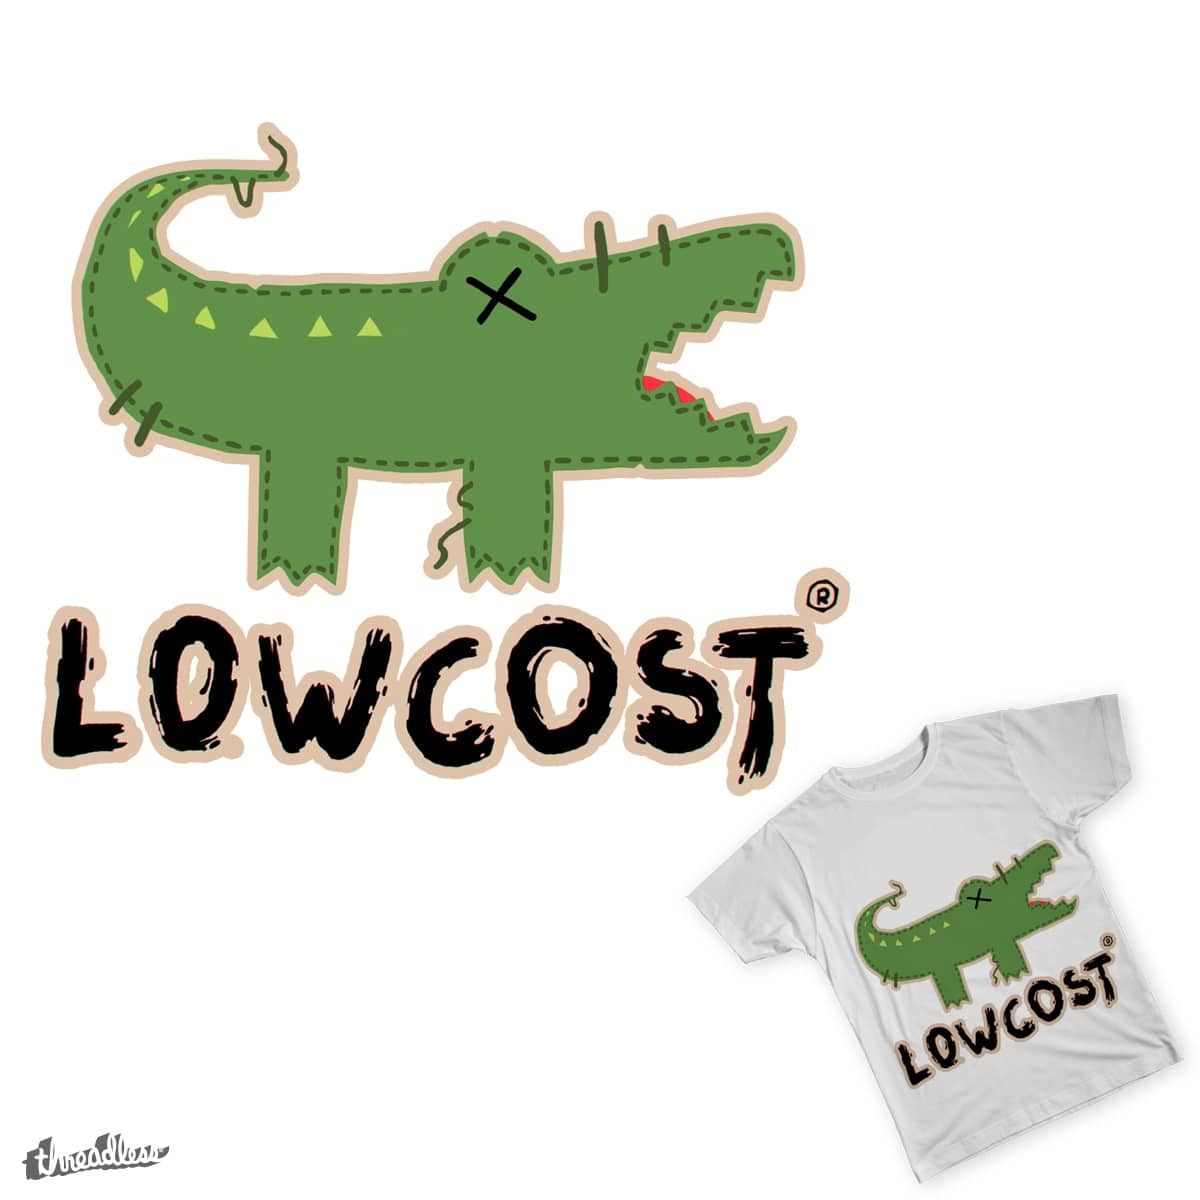 LOWCOST by CarlottArt on Threadless